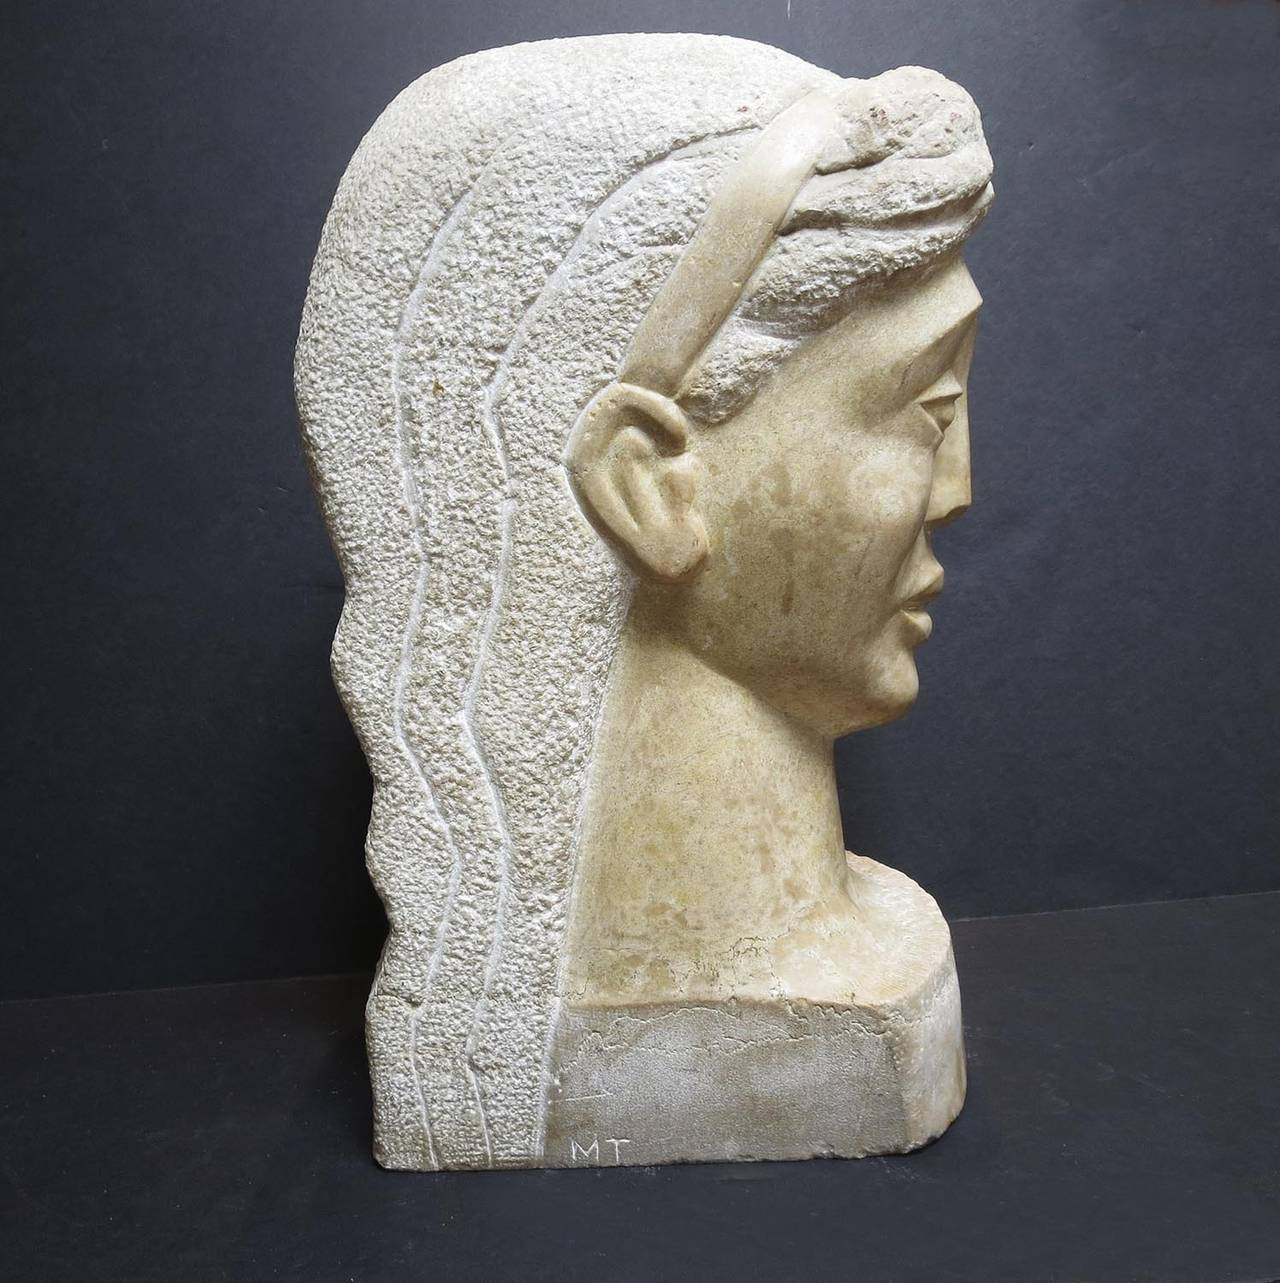 "Mid-20th Century Art Deco Marble Bust Signed ""MT"" For Sale"